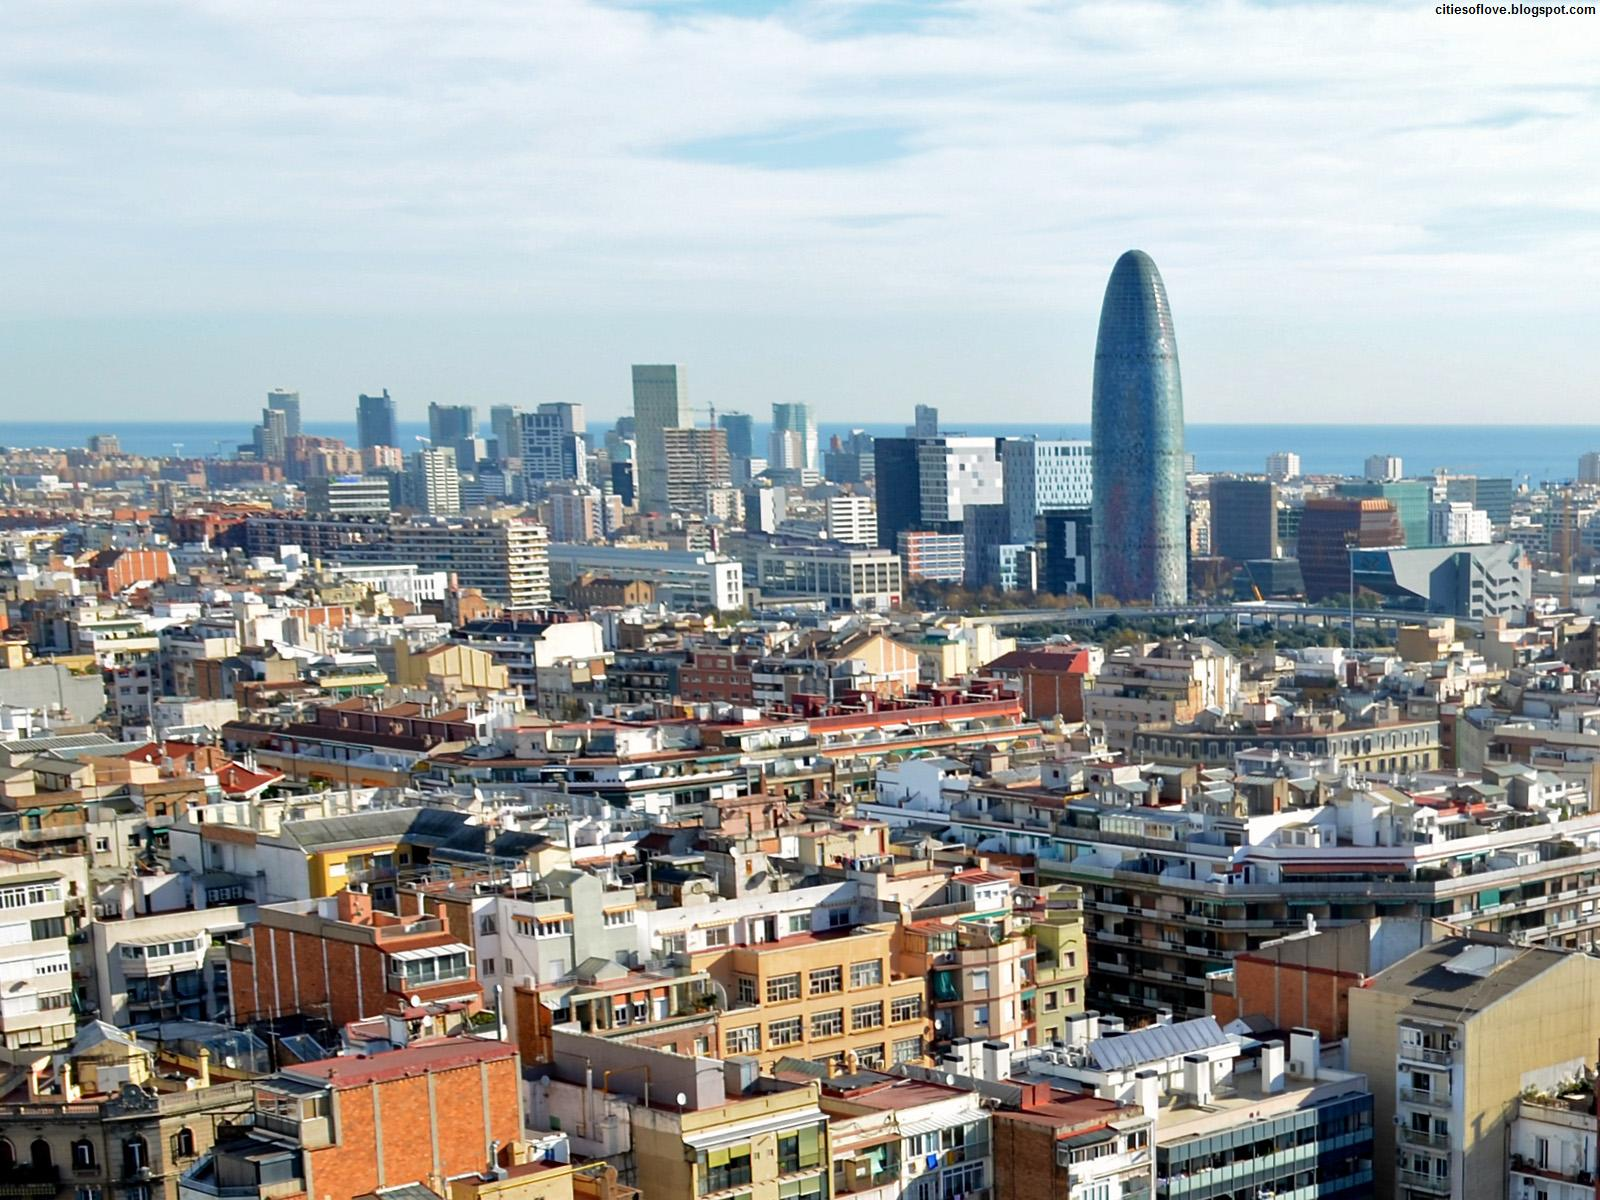 http://1.bp.blogspot.com/-OQvOzu4bM3U/UJ1-7ZU2HTI/AAAAAAAAIUg/YDO30MIj7_c/s1600/Barcelona_City_Overview_Beautiful_Capital_Of_Catalonia_Spain_Hd_Desktop_Wallpaper_citiesoflove.blogspot.com.jpg